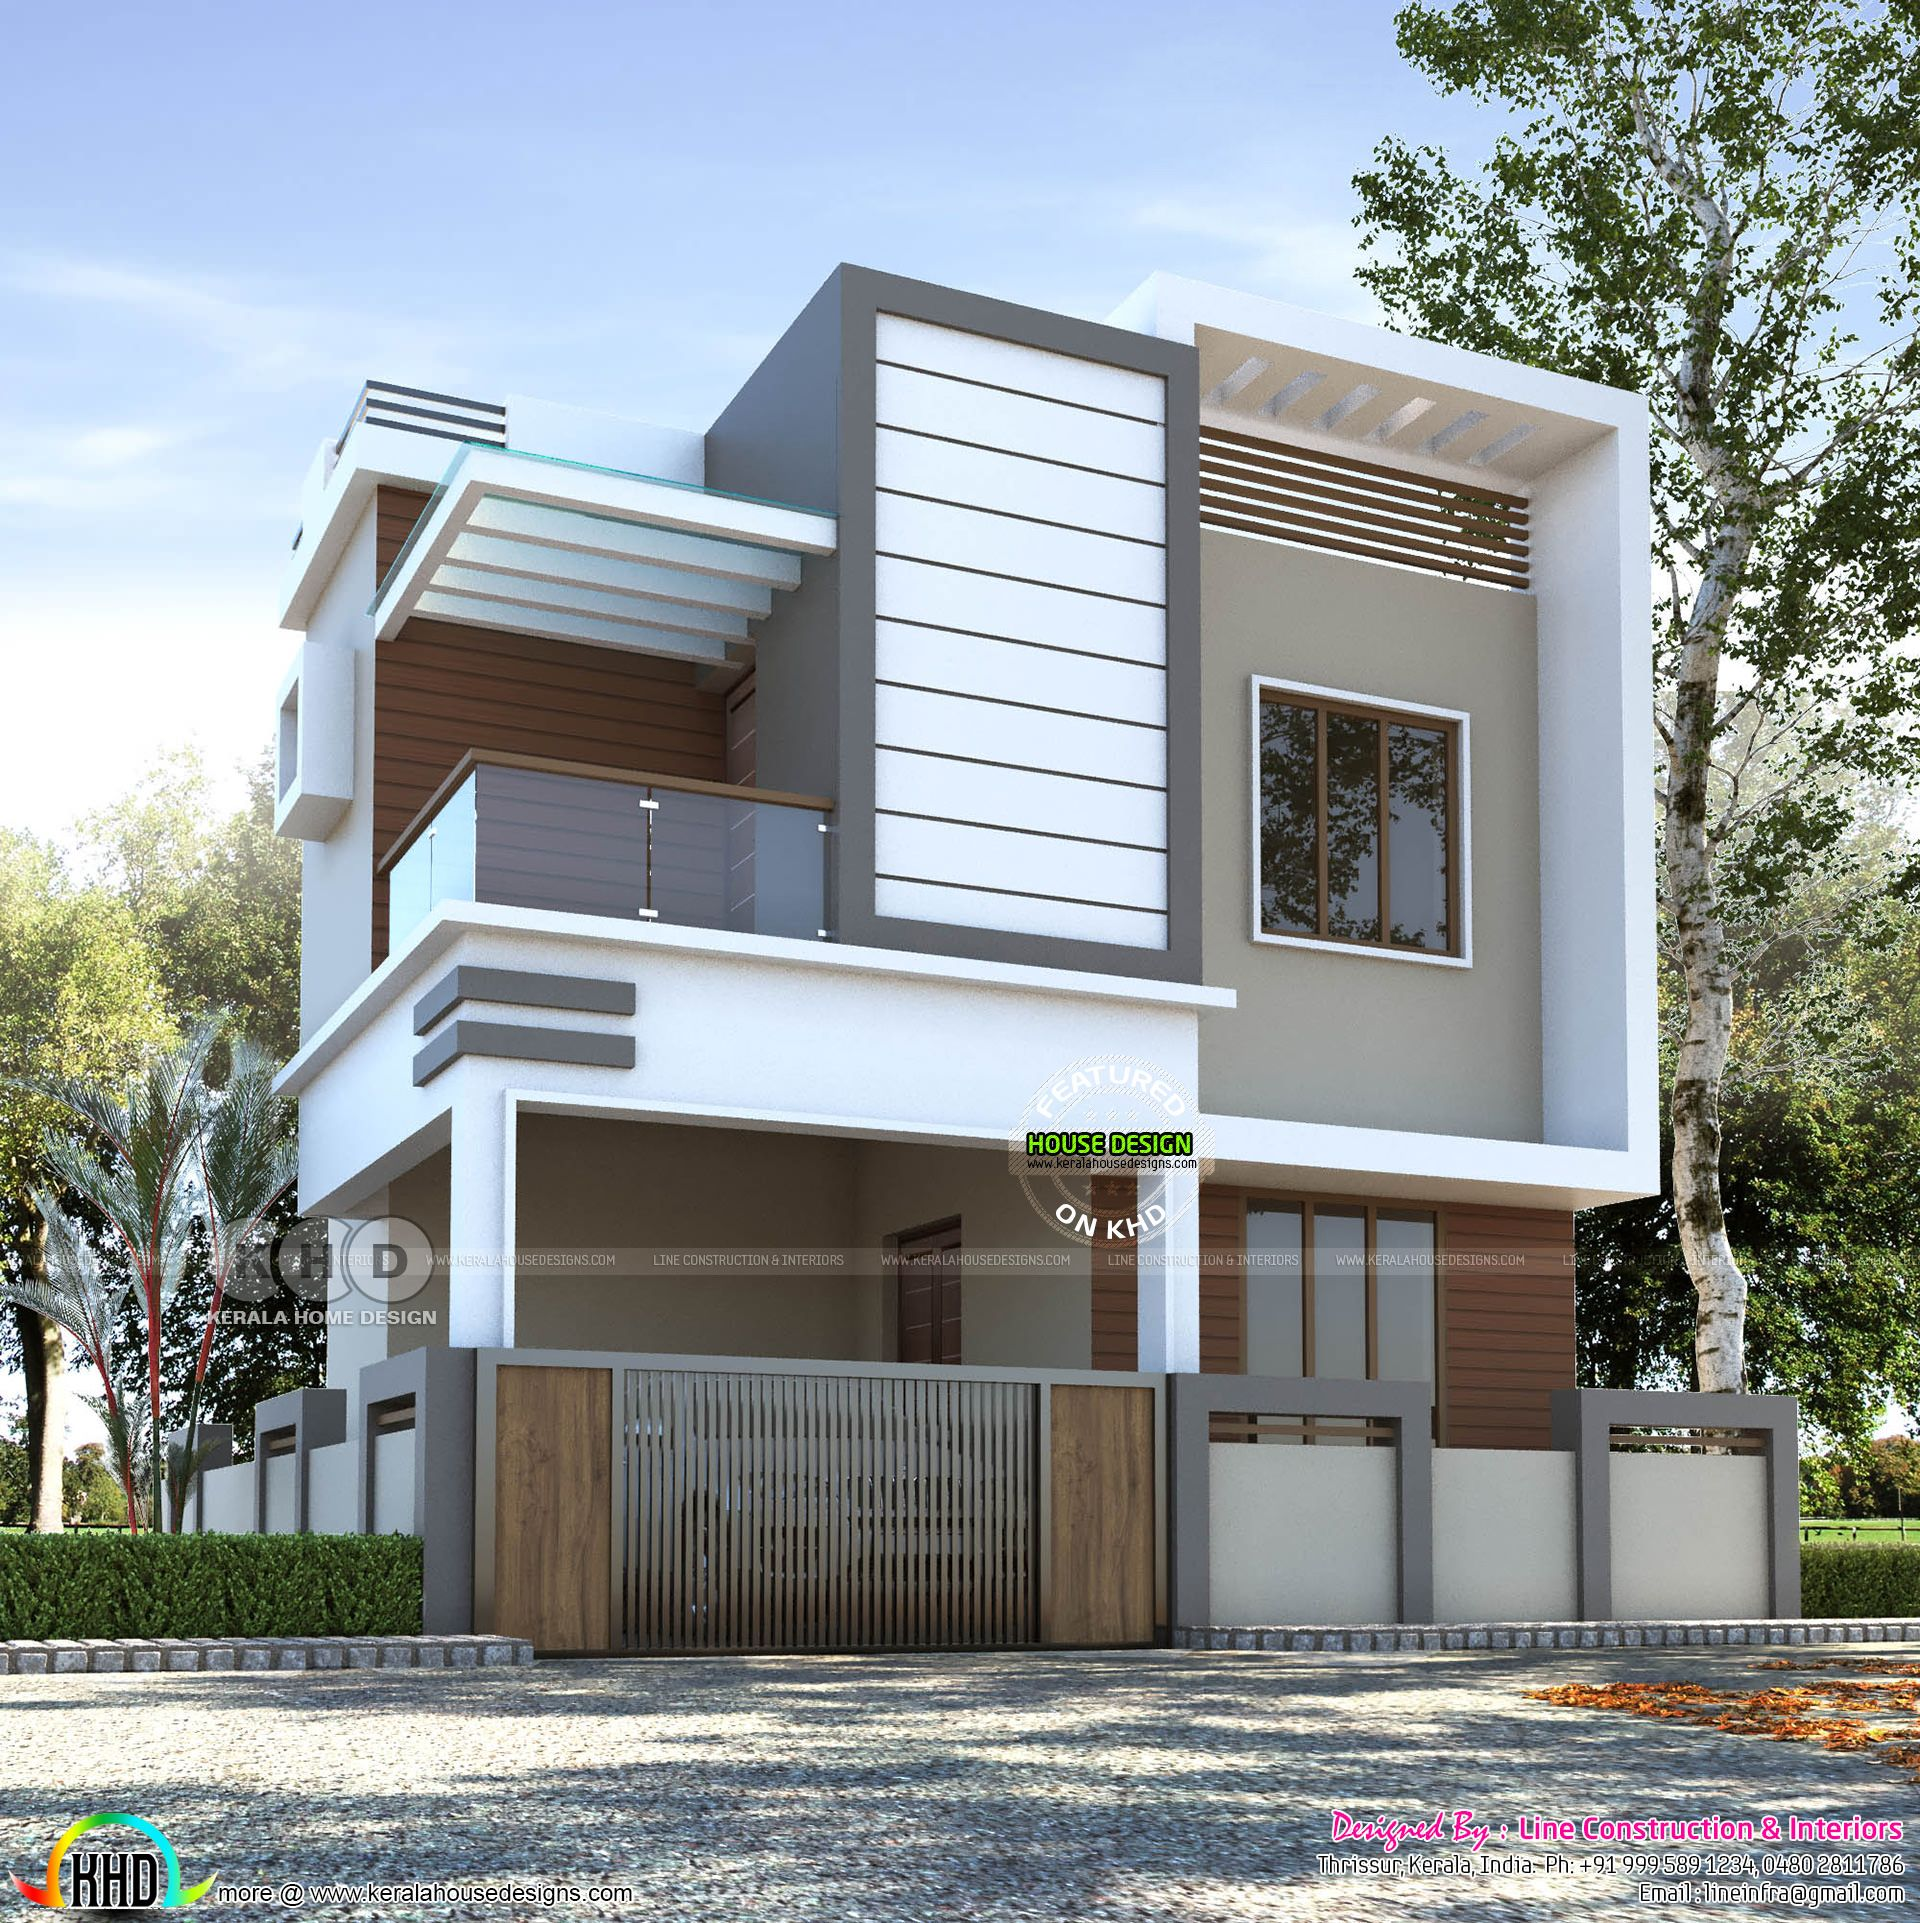 1230 Square Feet 3 Bedroom Small Double Floor Home In 2020 Duplex House Design Bungalow House Design House Front Design